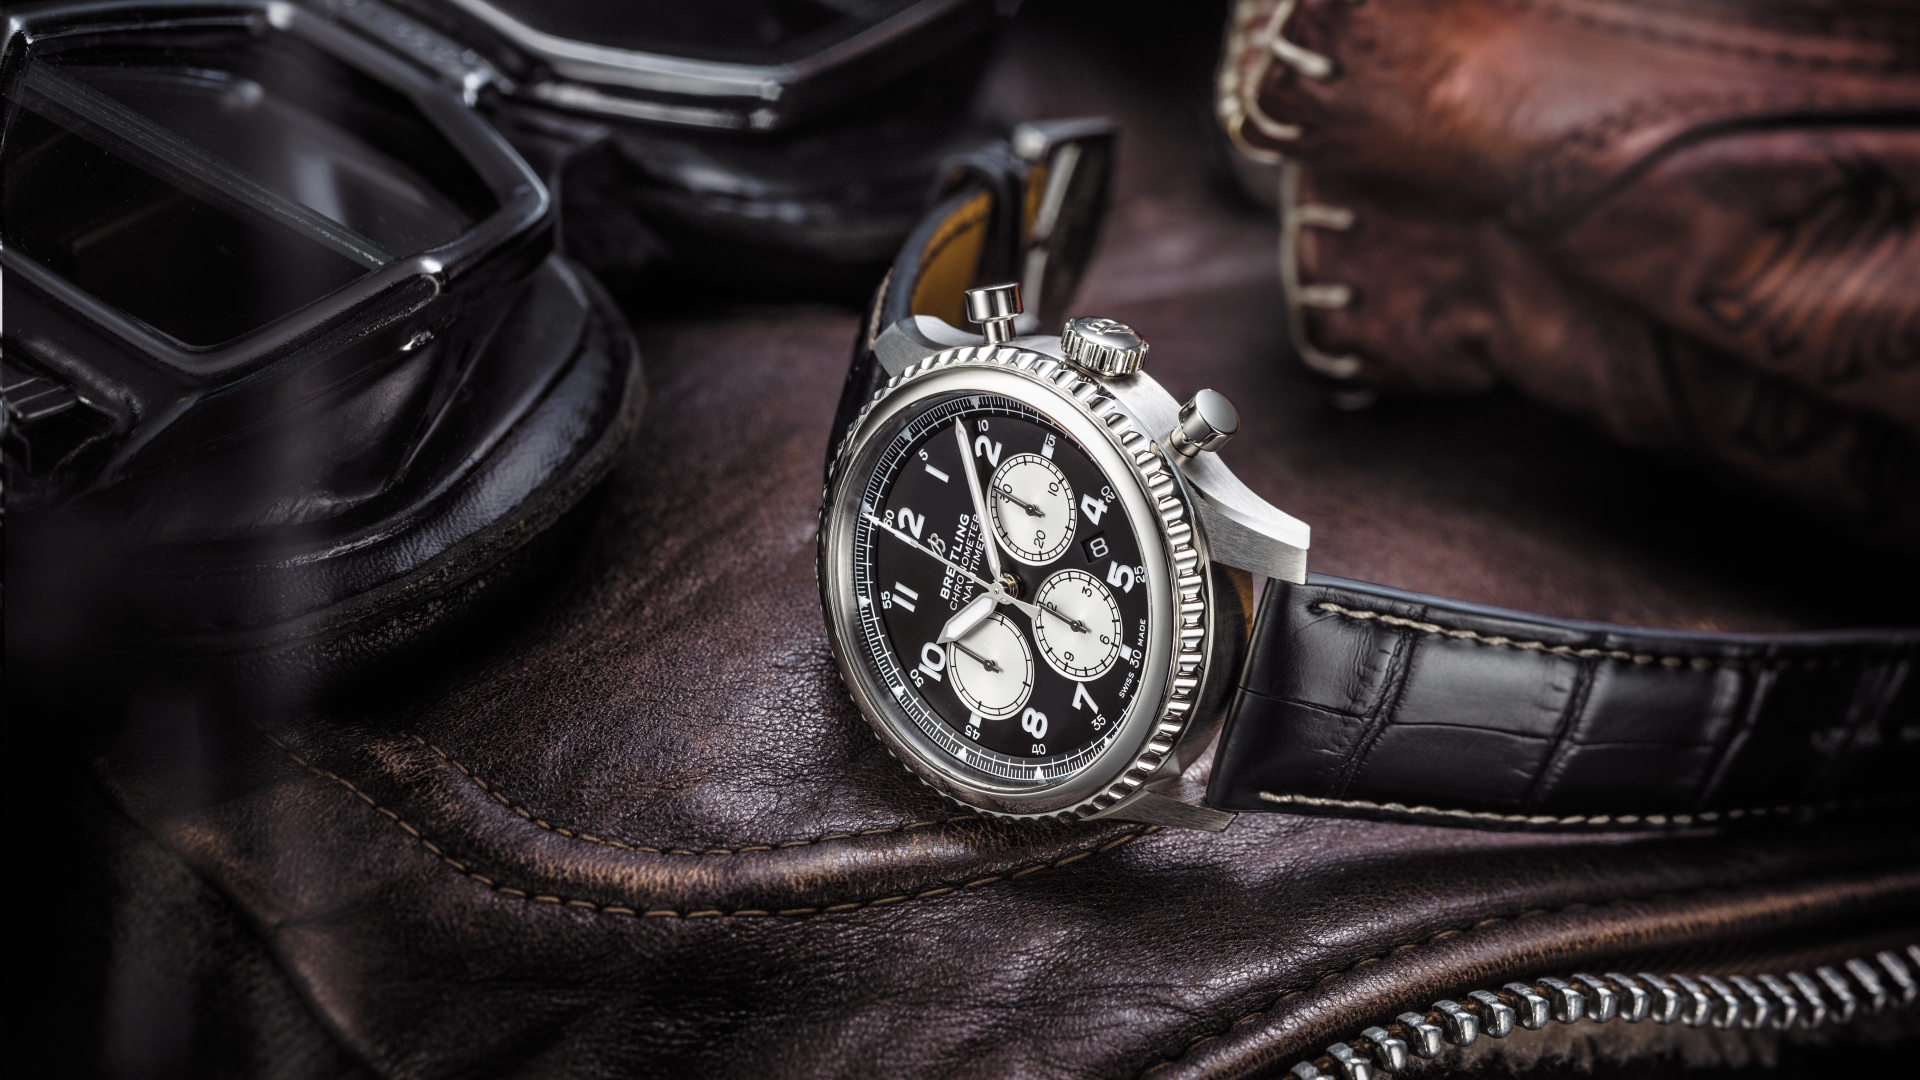 Navitimer 8 B01 with black dial and black alligator leather strap. (PPR/Breitling)